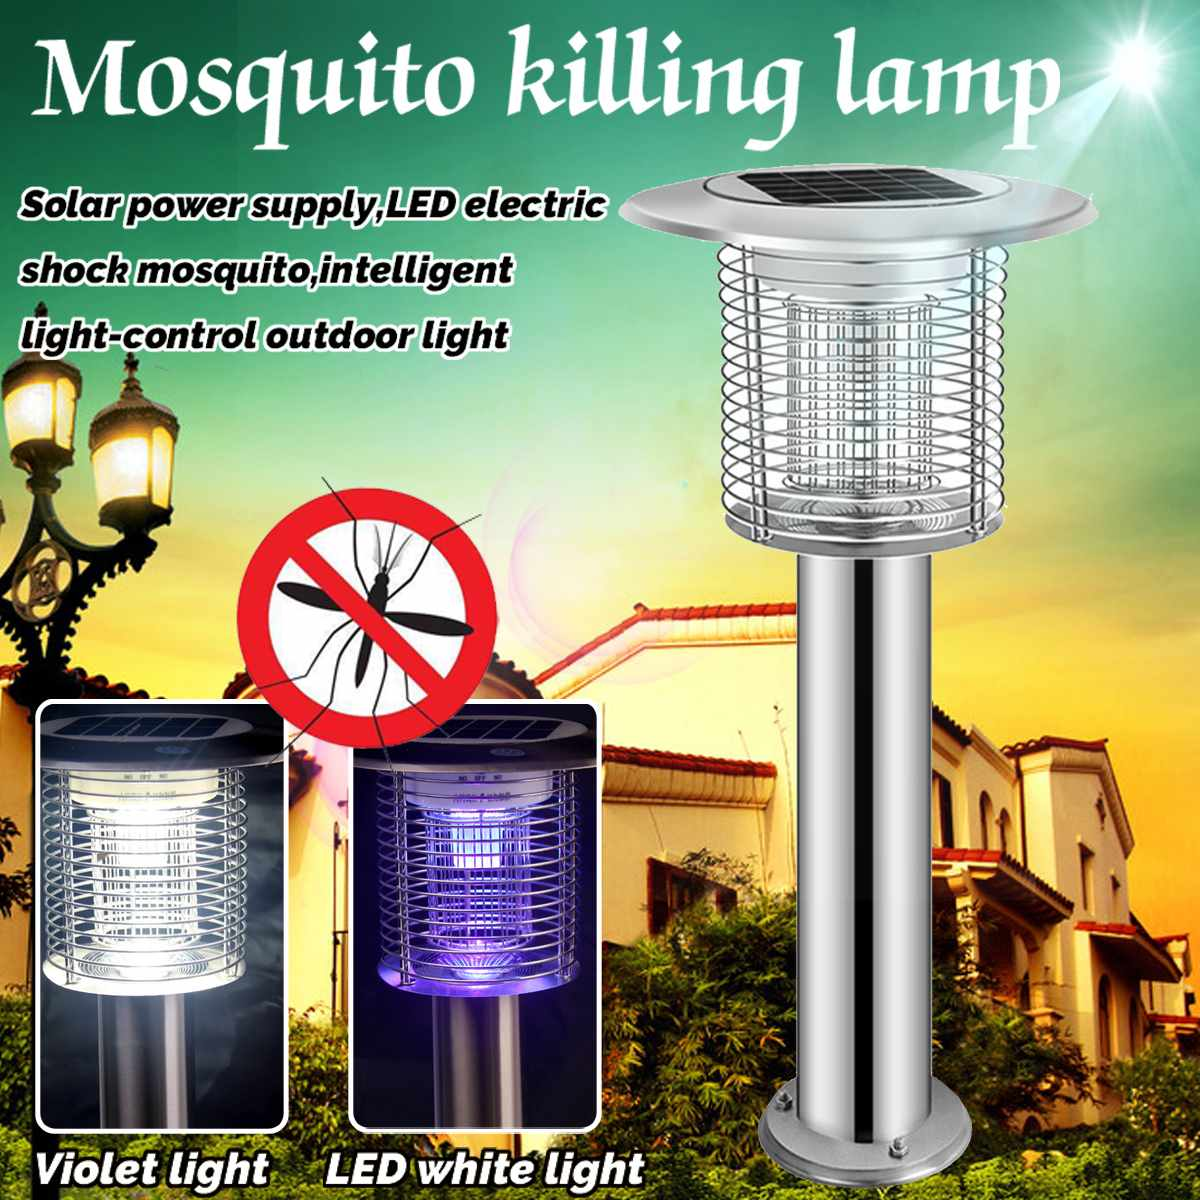 Solar Violet LED Electric Shock Mosquito Double Optical Frequency Light-control Automatic Induction Intelligent Outdoor LampSolar Violet LED Electric Shock Mosquito Double Optical Frequency Light-control Automatic Induction Intelligent Outdoor Lamp